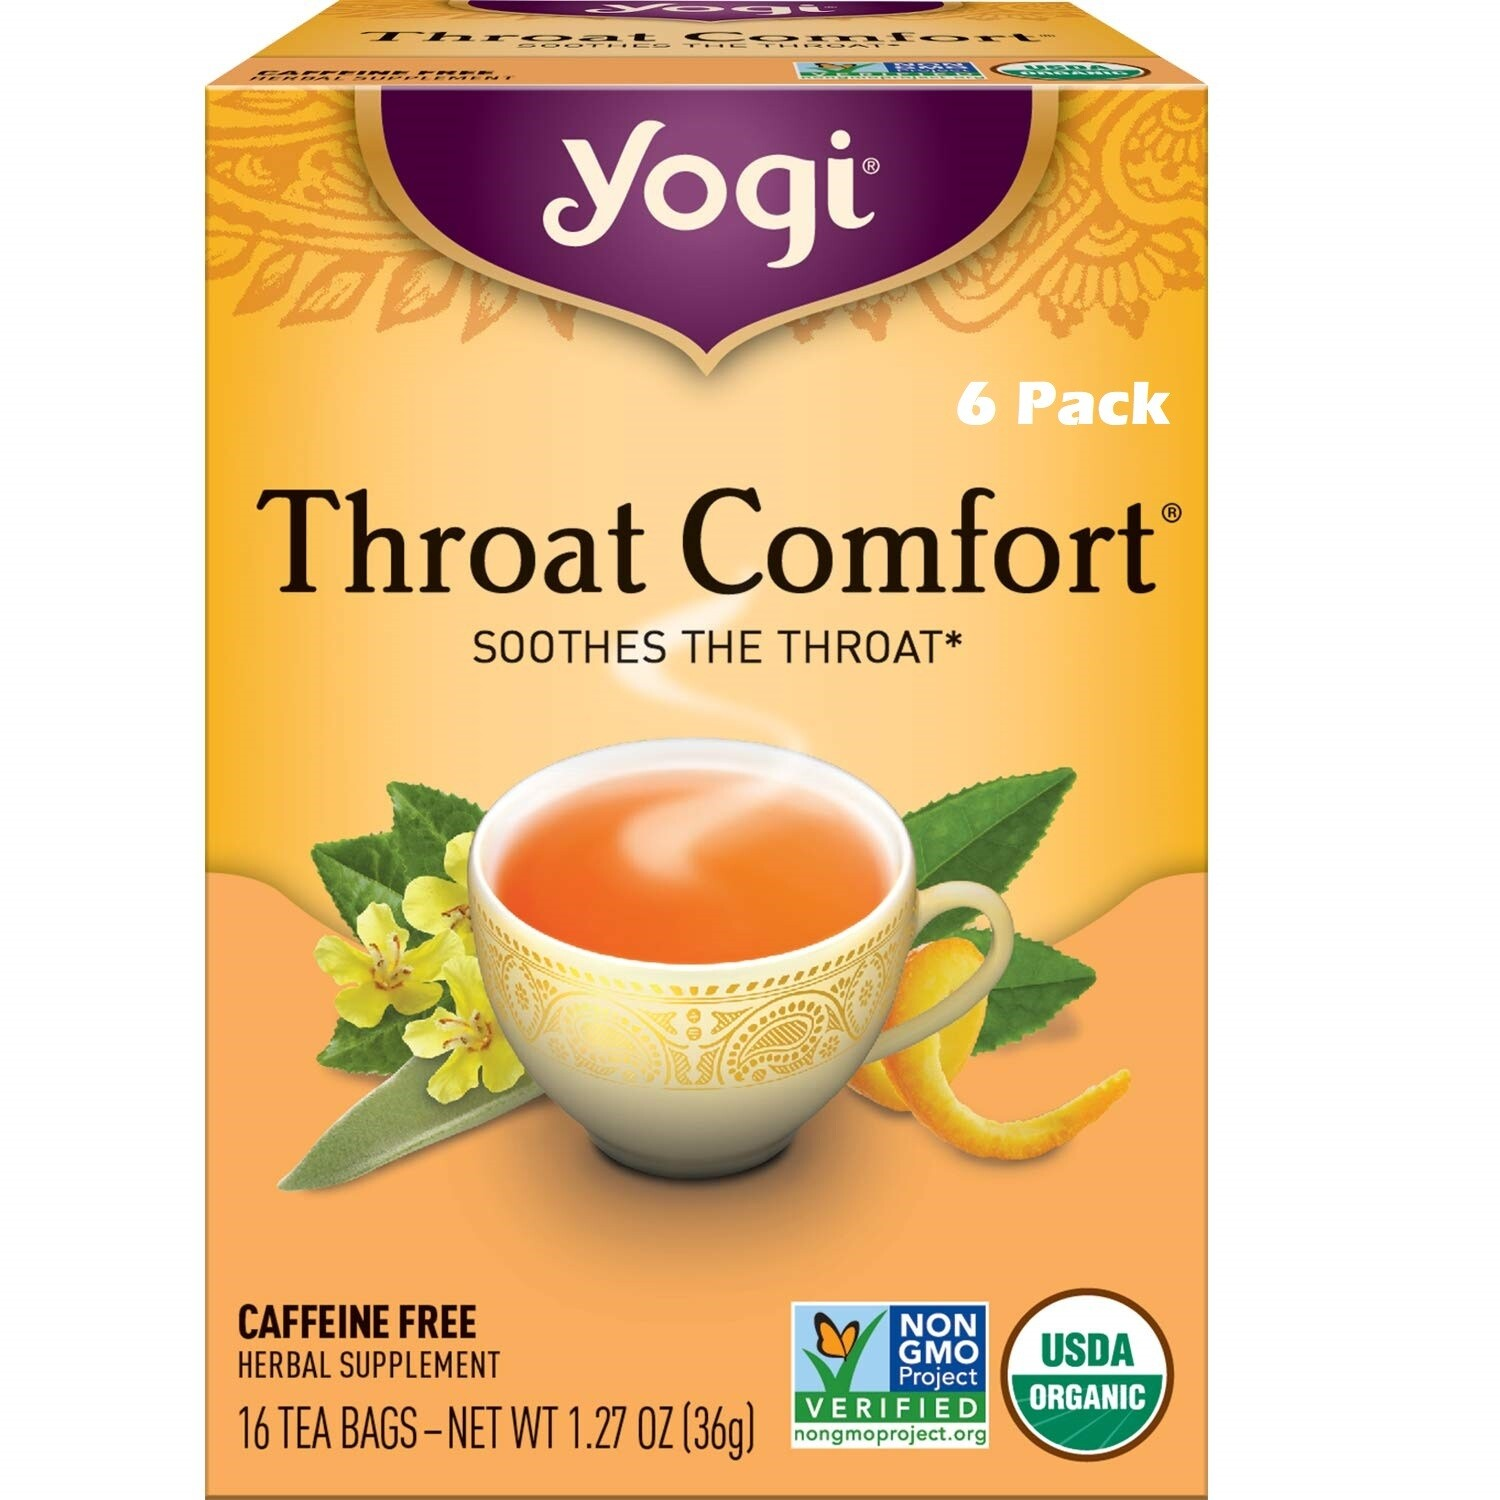 Yogi Tea Throat Comfort Herbal Tea, Soothes the Throat, 16 Bags/box, Pack of 6